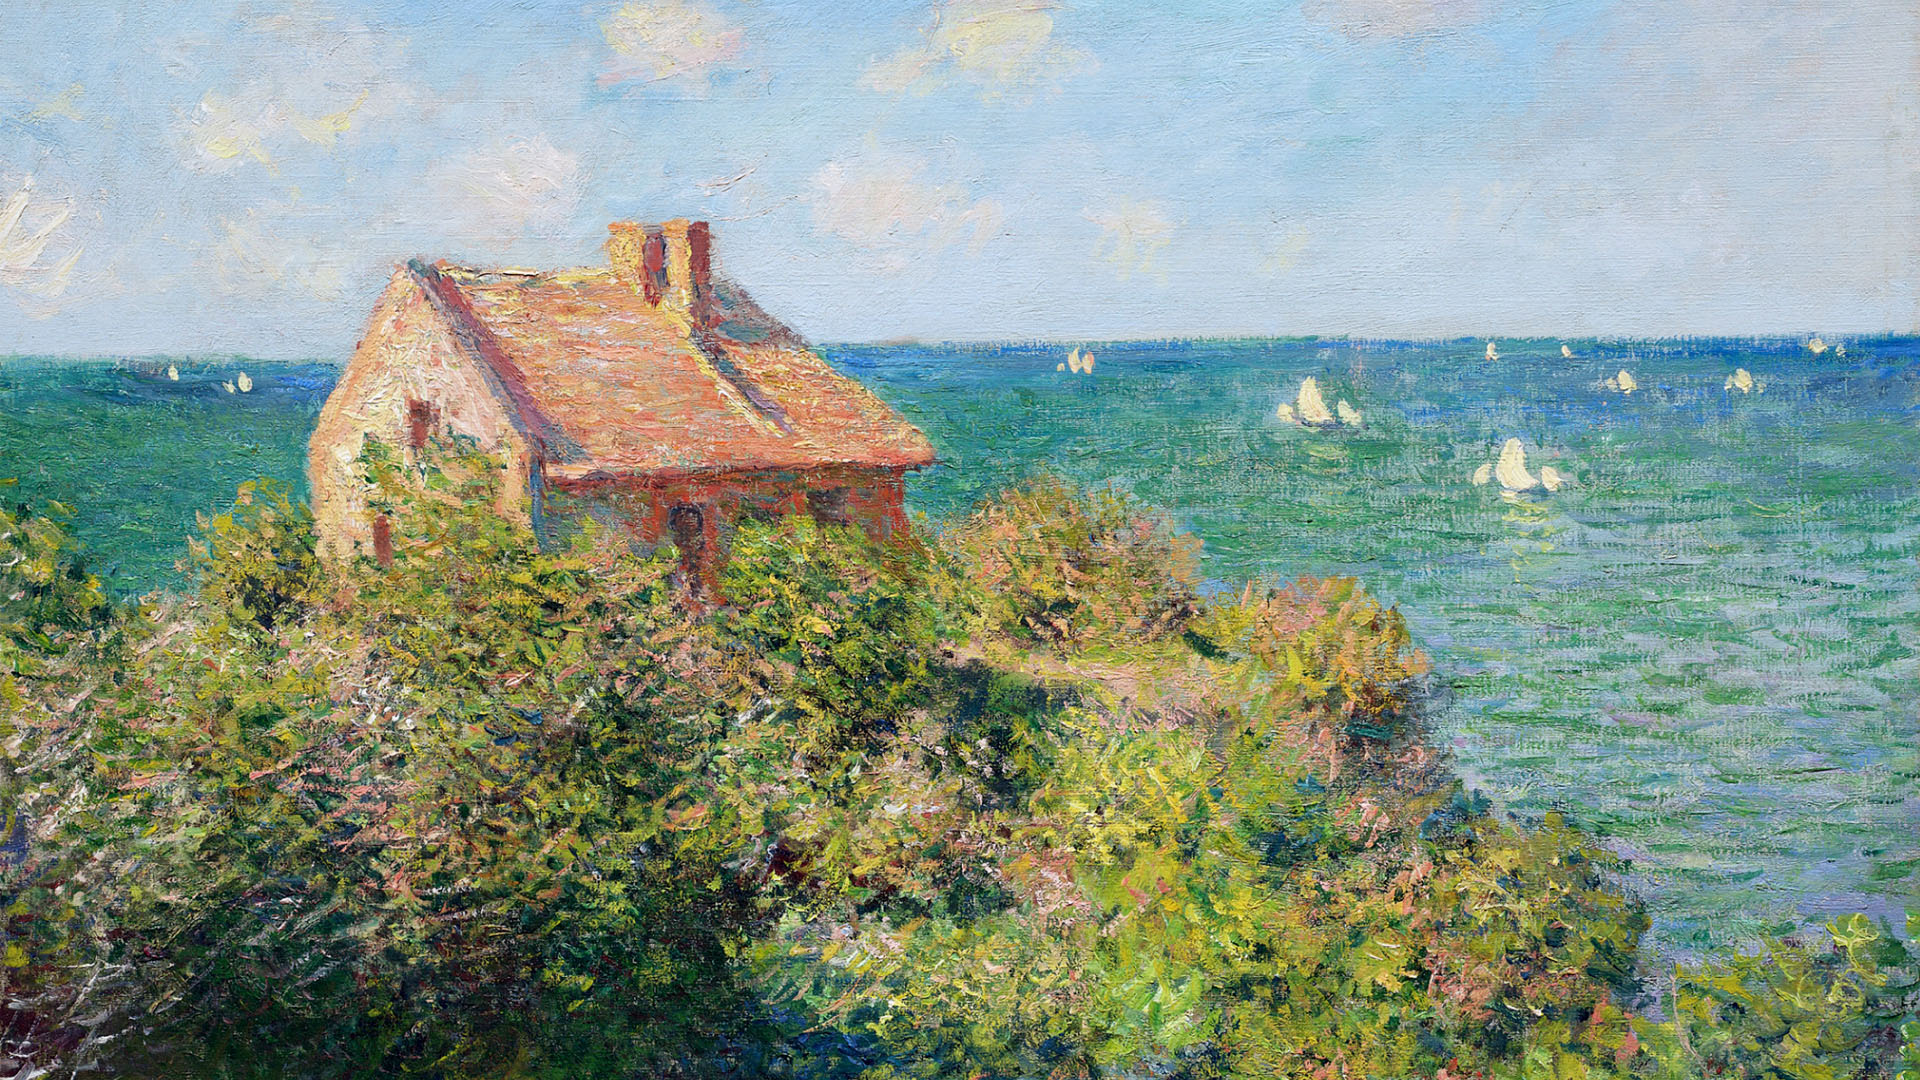 Claude Monet - Fisherman's Cottage at Varengeville 1920x1080